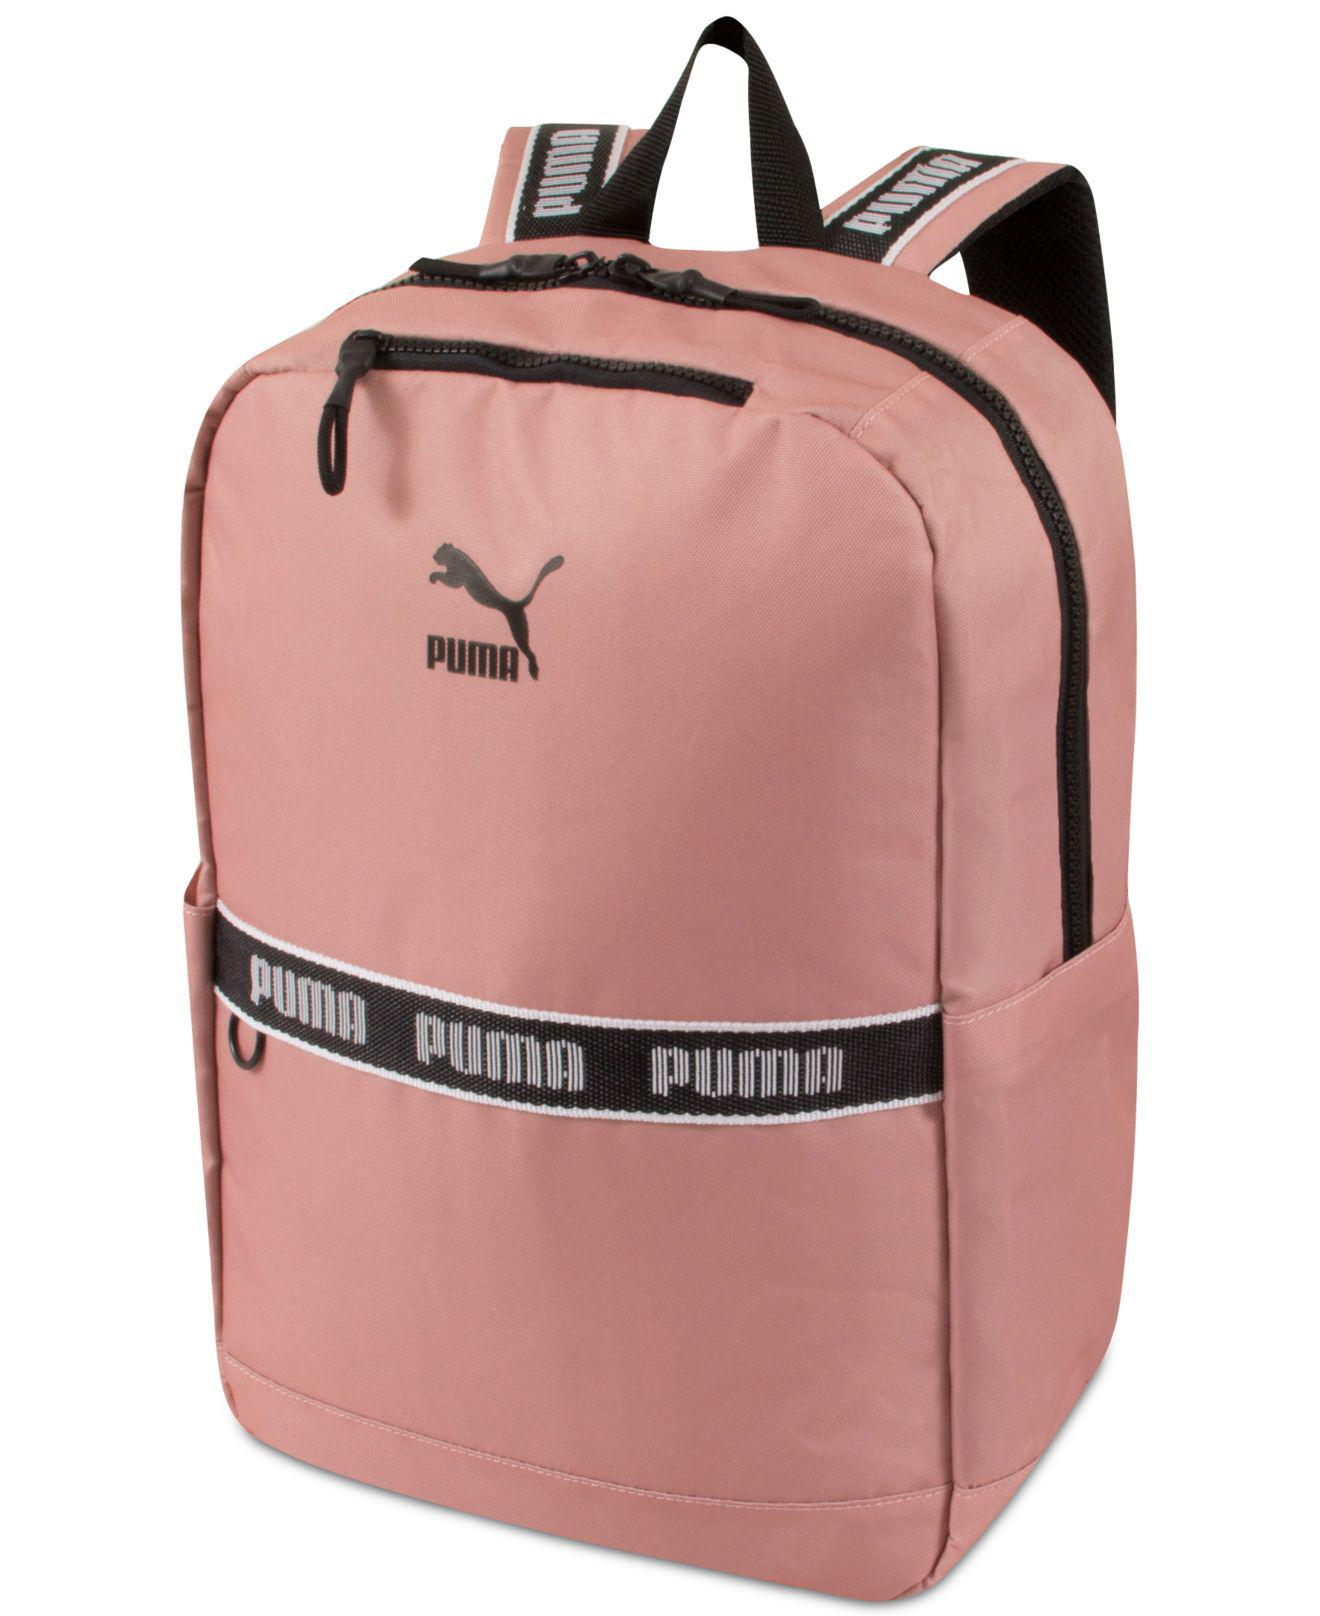 ad4c6a2d355a Lyst - PUMA Linear Canvas Backpack in Pink